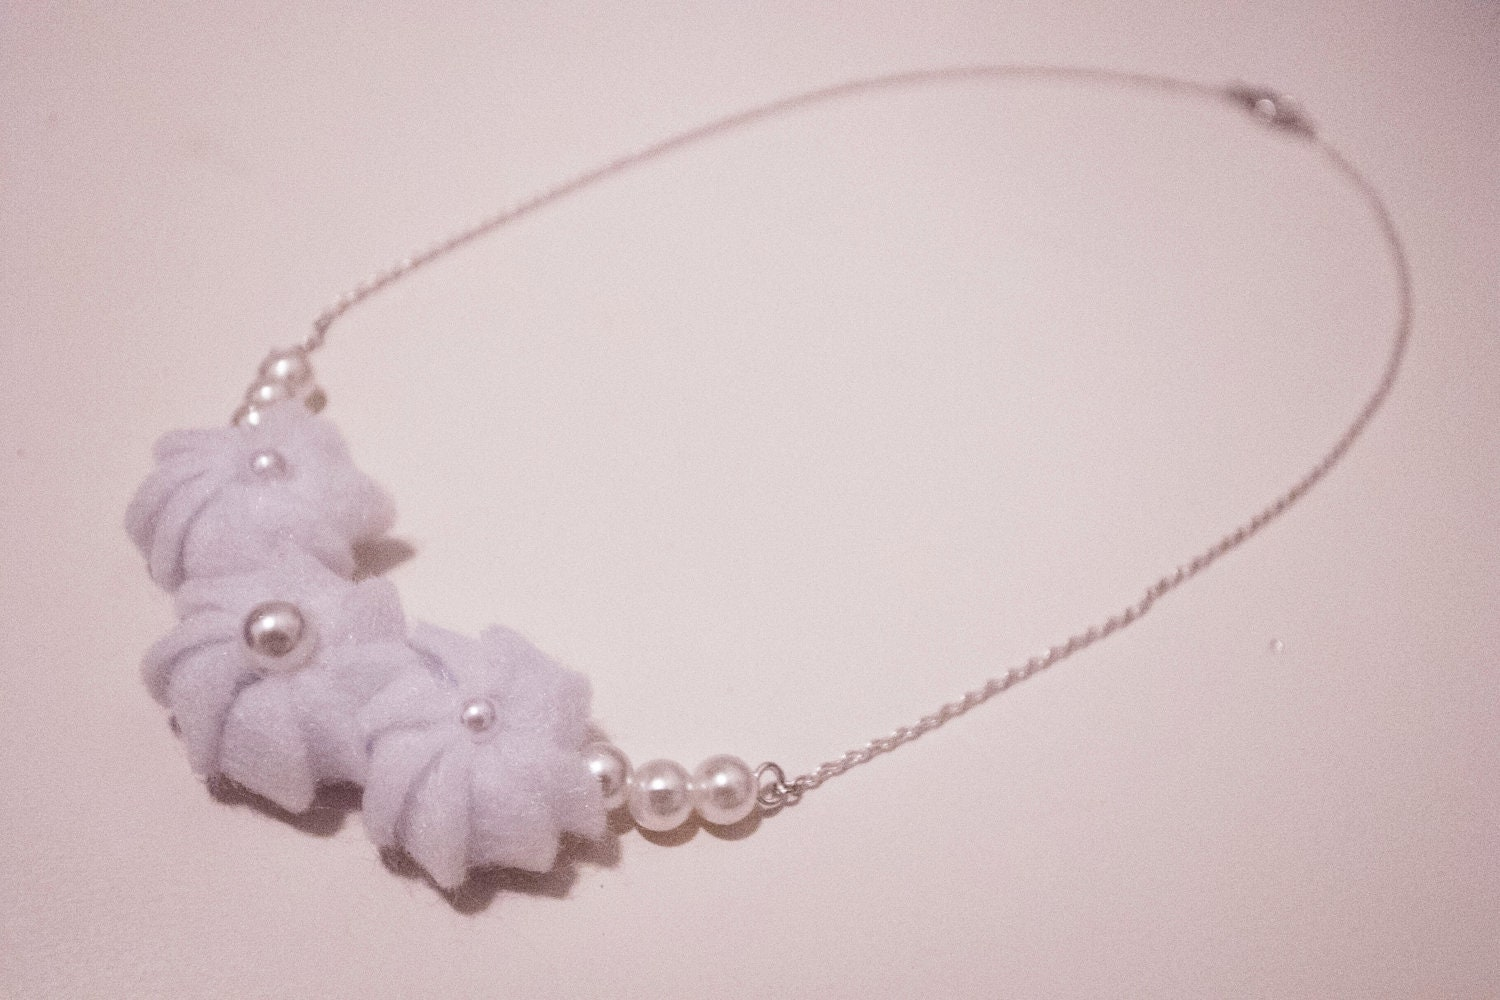 Felt Whipped Cream  with Pearls Necklace/Bracelet - Custom Made Available